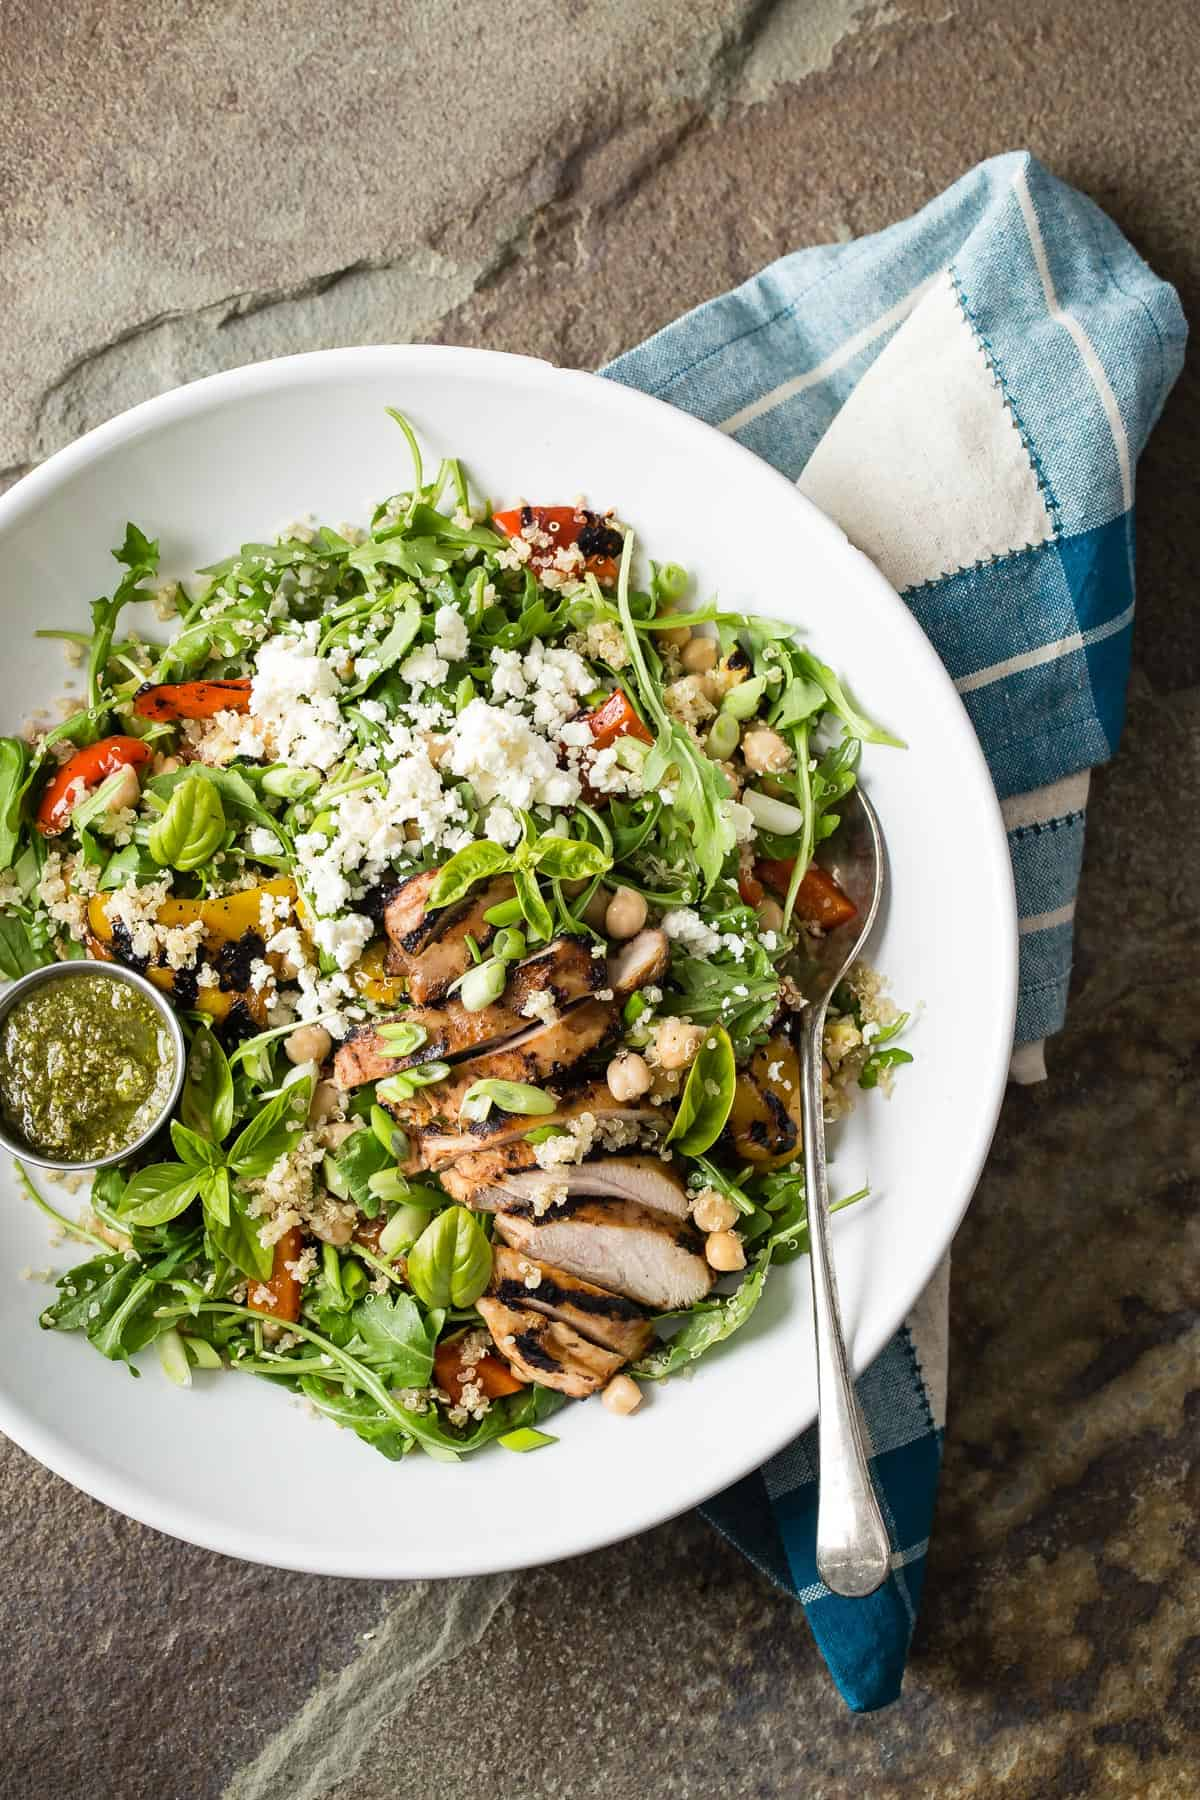 A super healthy Quinoa Vegetable Salad loaded with grilled chicken, arugula, grilled veggies, garbanzo beans and feta cheese.